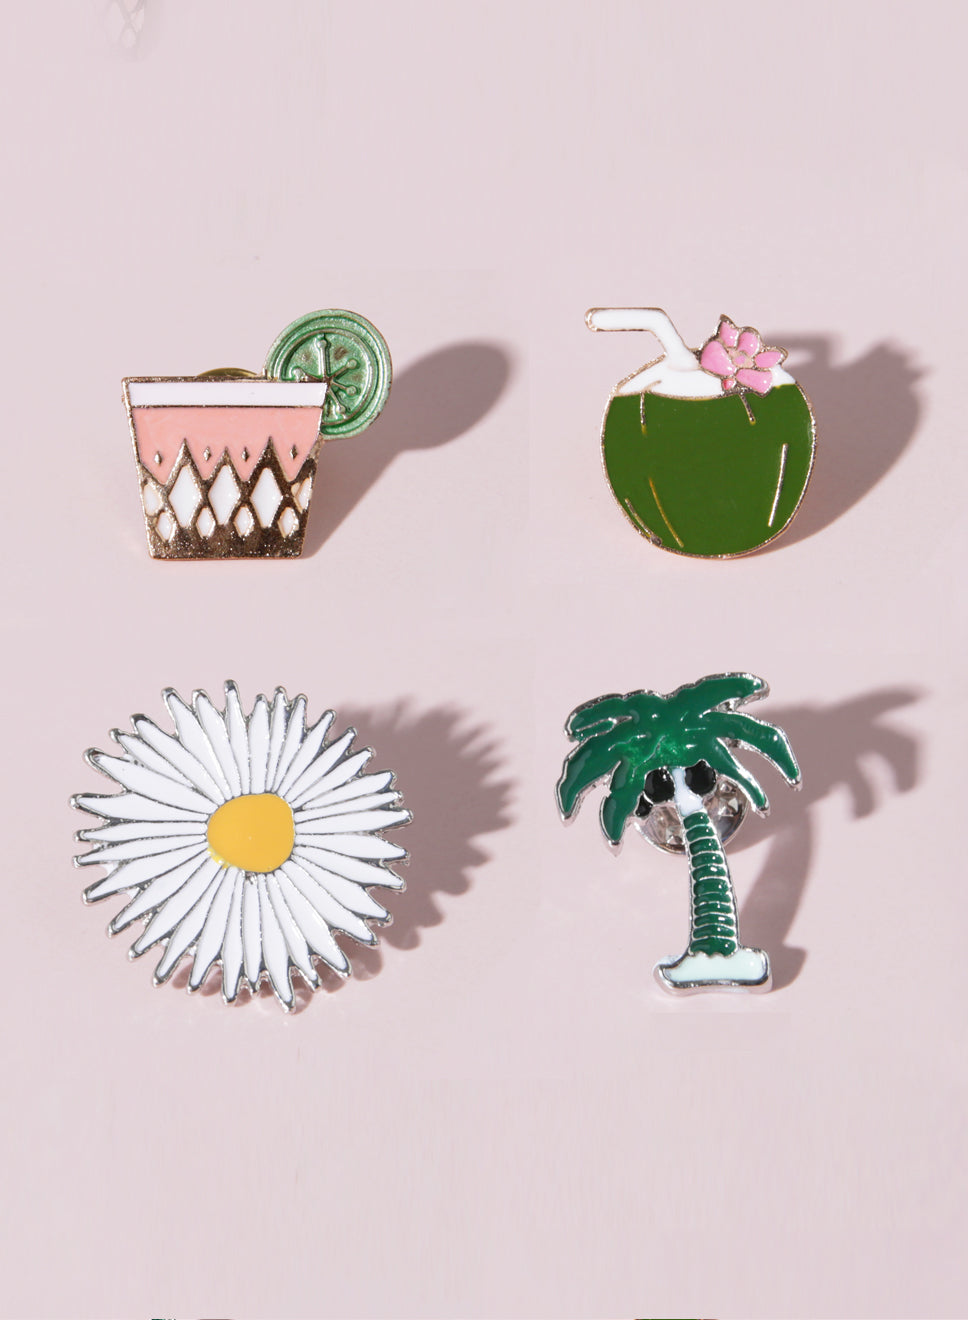 TROPICS Enamel Pin Set at $ 15.90 only sold at And Well Dressed Online Fashion Store Singapore